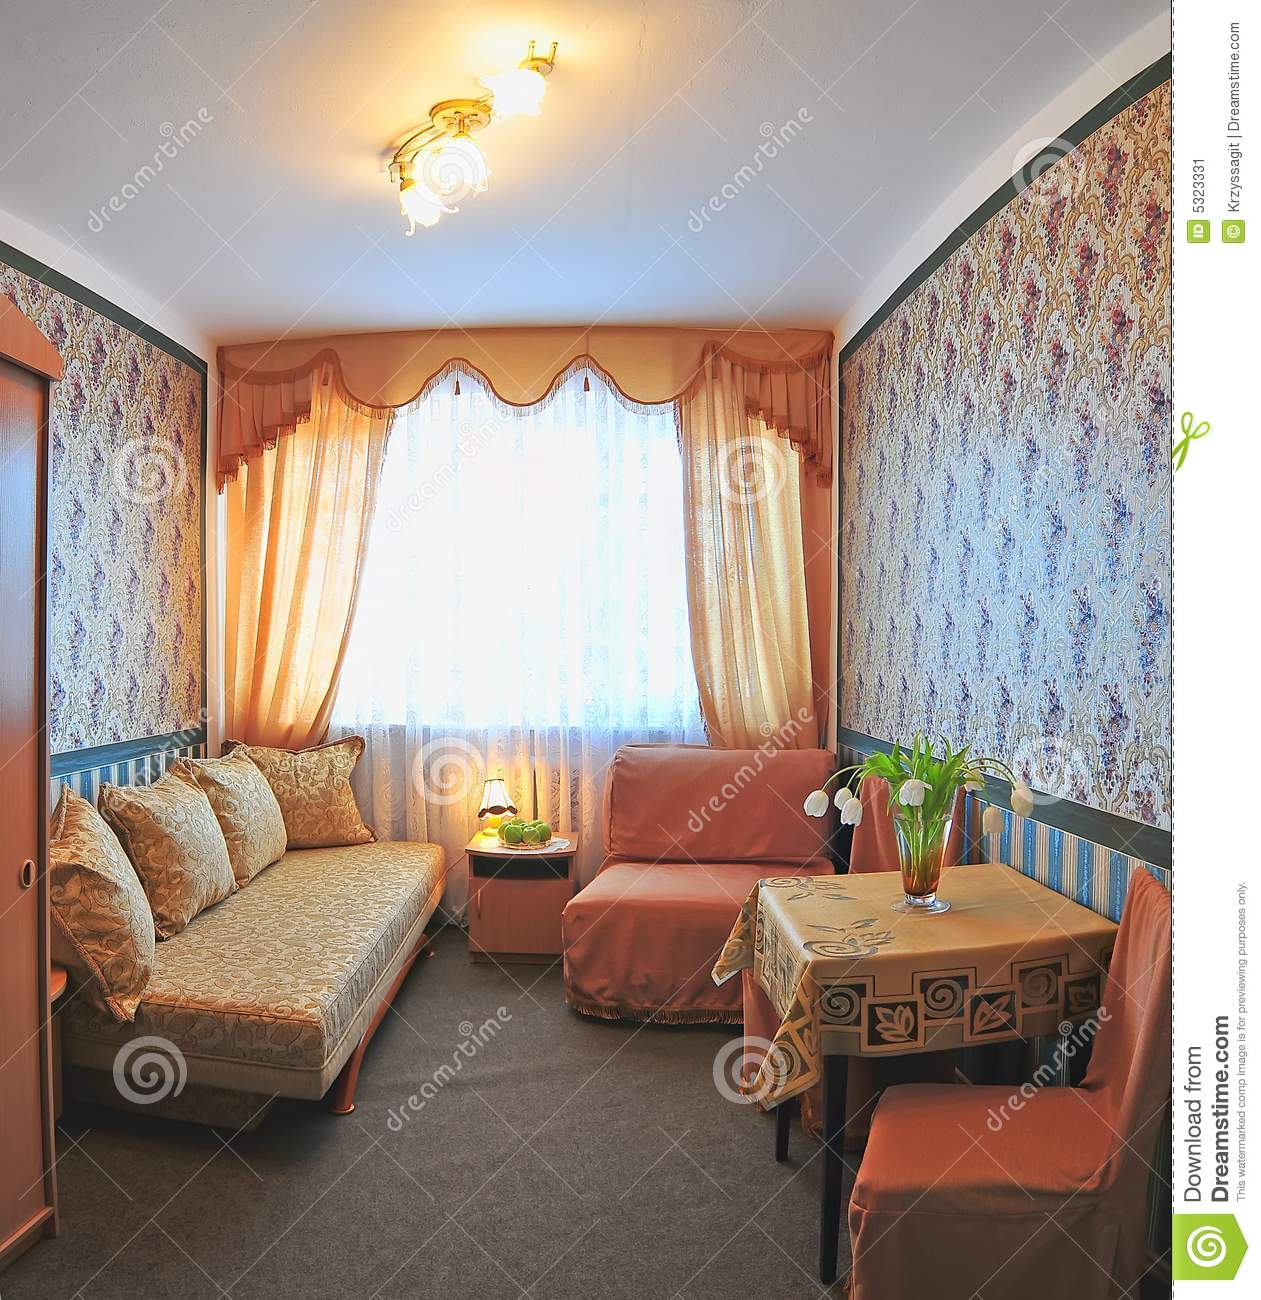 Small hotel room stock image image 5323331 for Small hotel room